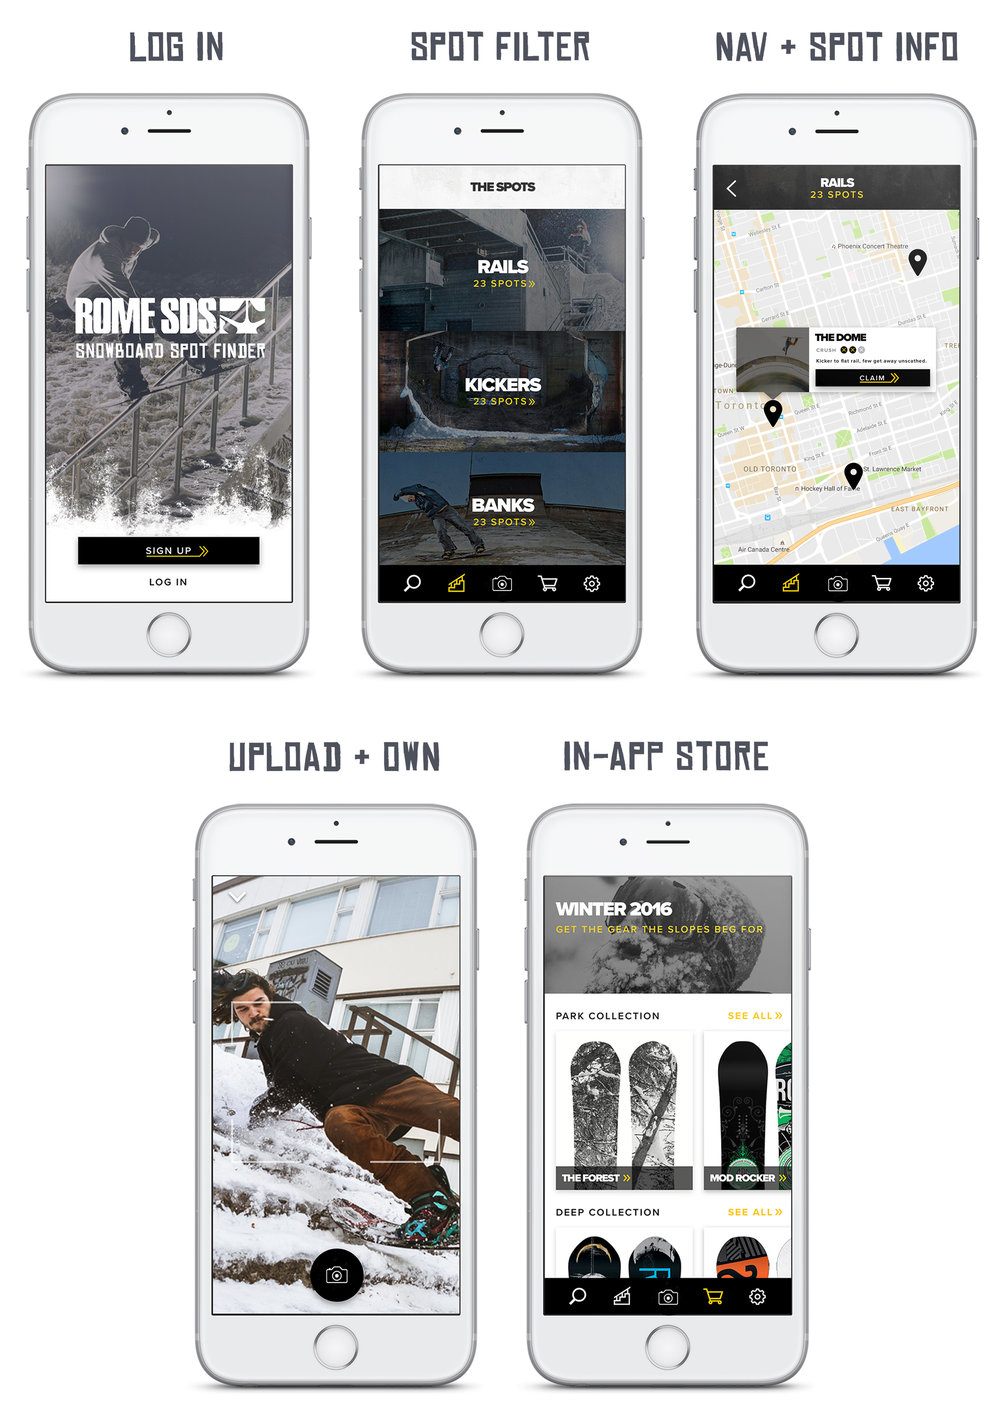 """Snowboarders use the Spot Finder App to locate street snowboard spots, rate their difficulty, upload photos and videos to """"own"""" the spot, and purchase Rome products from their phone."""